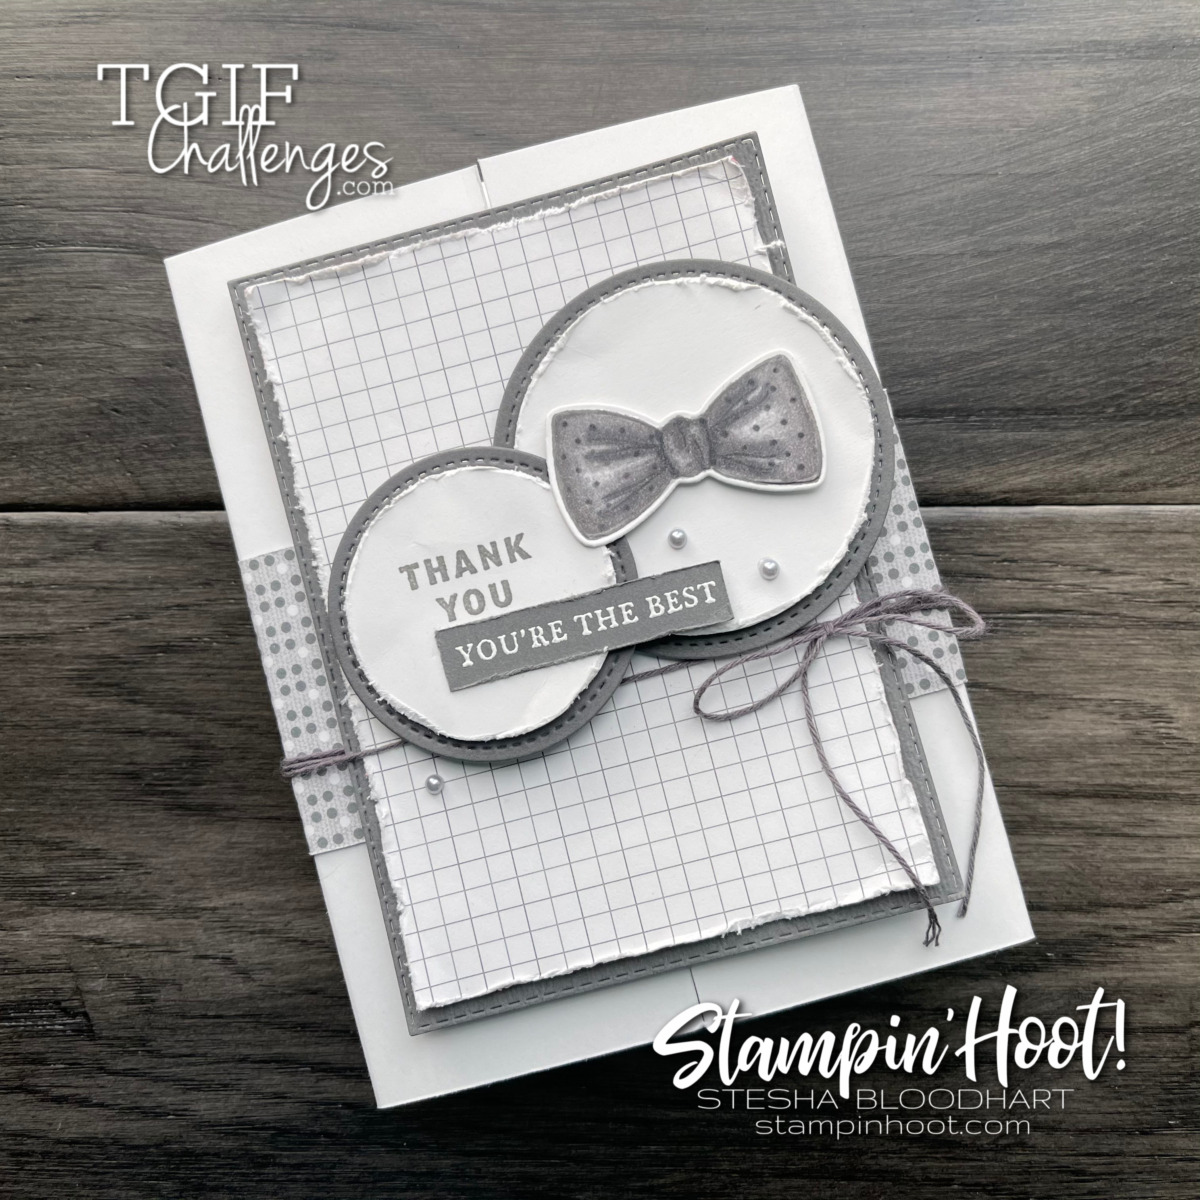 IMG#tgifc307 Sketch Challenge using Well Suited from Stampin' Up! Card by Stesha Bloodhart, Stampin' Hoot!